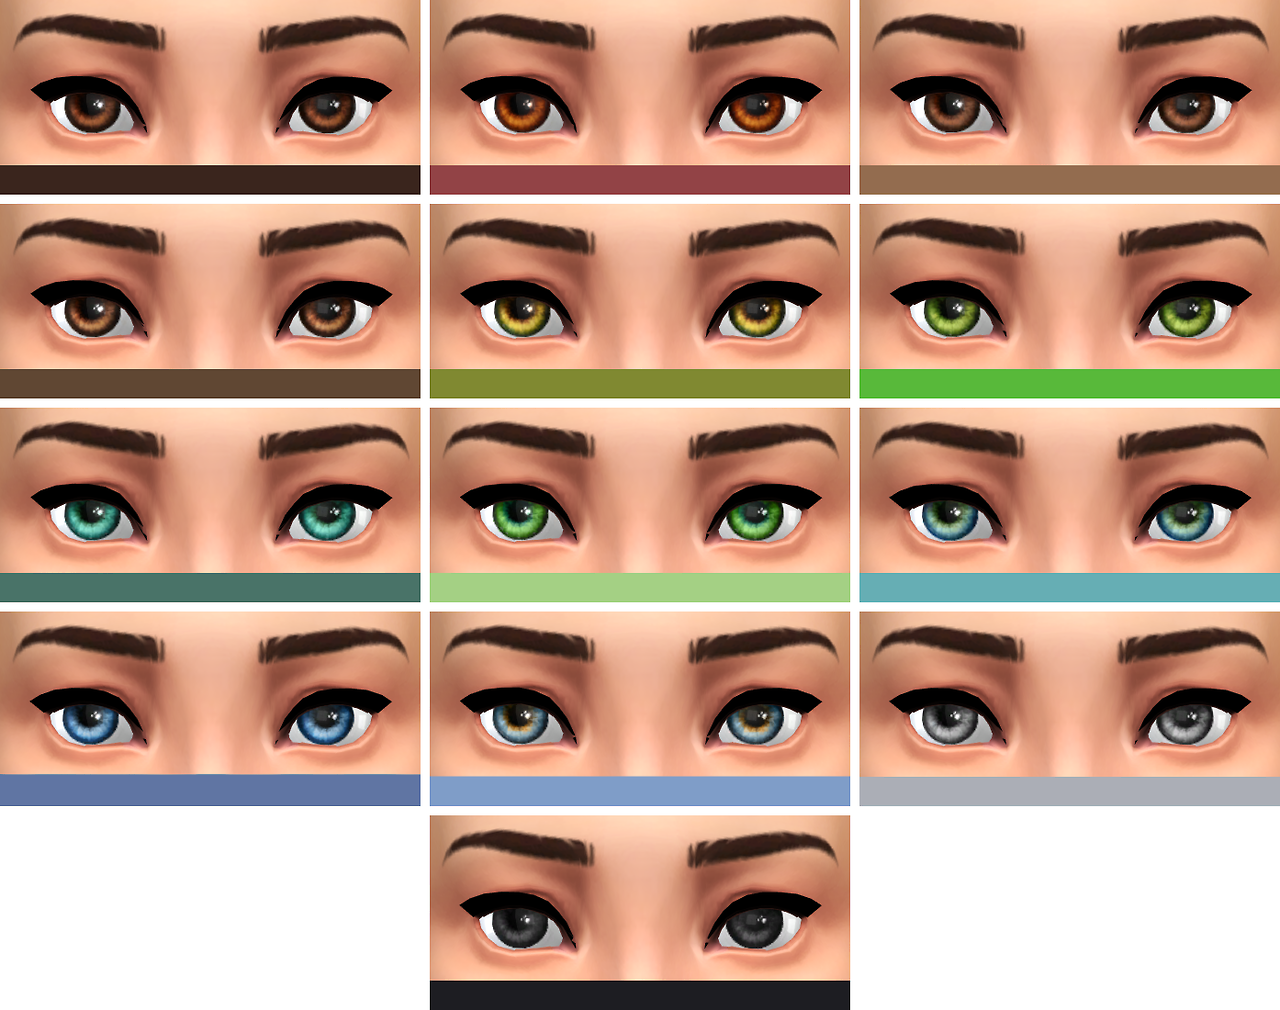 Troublemaker Default Replacement Eyes by Notsocialbunny